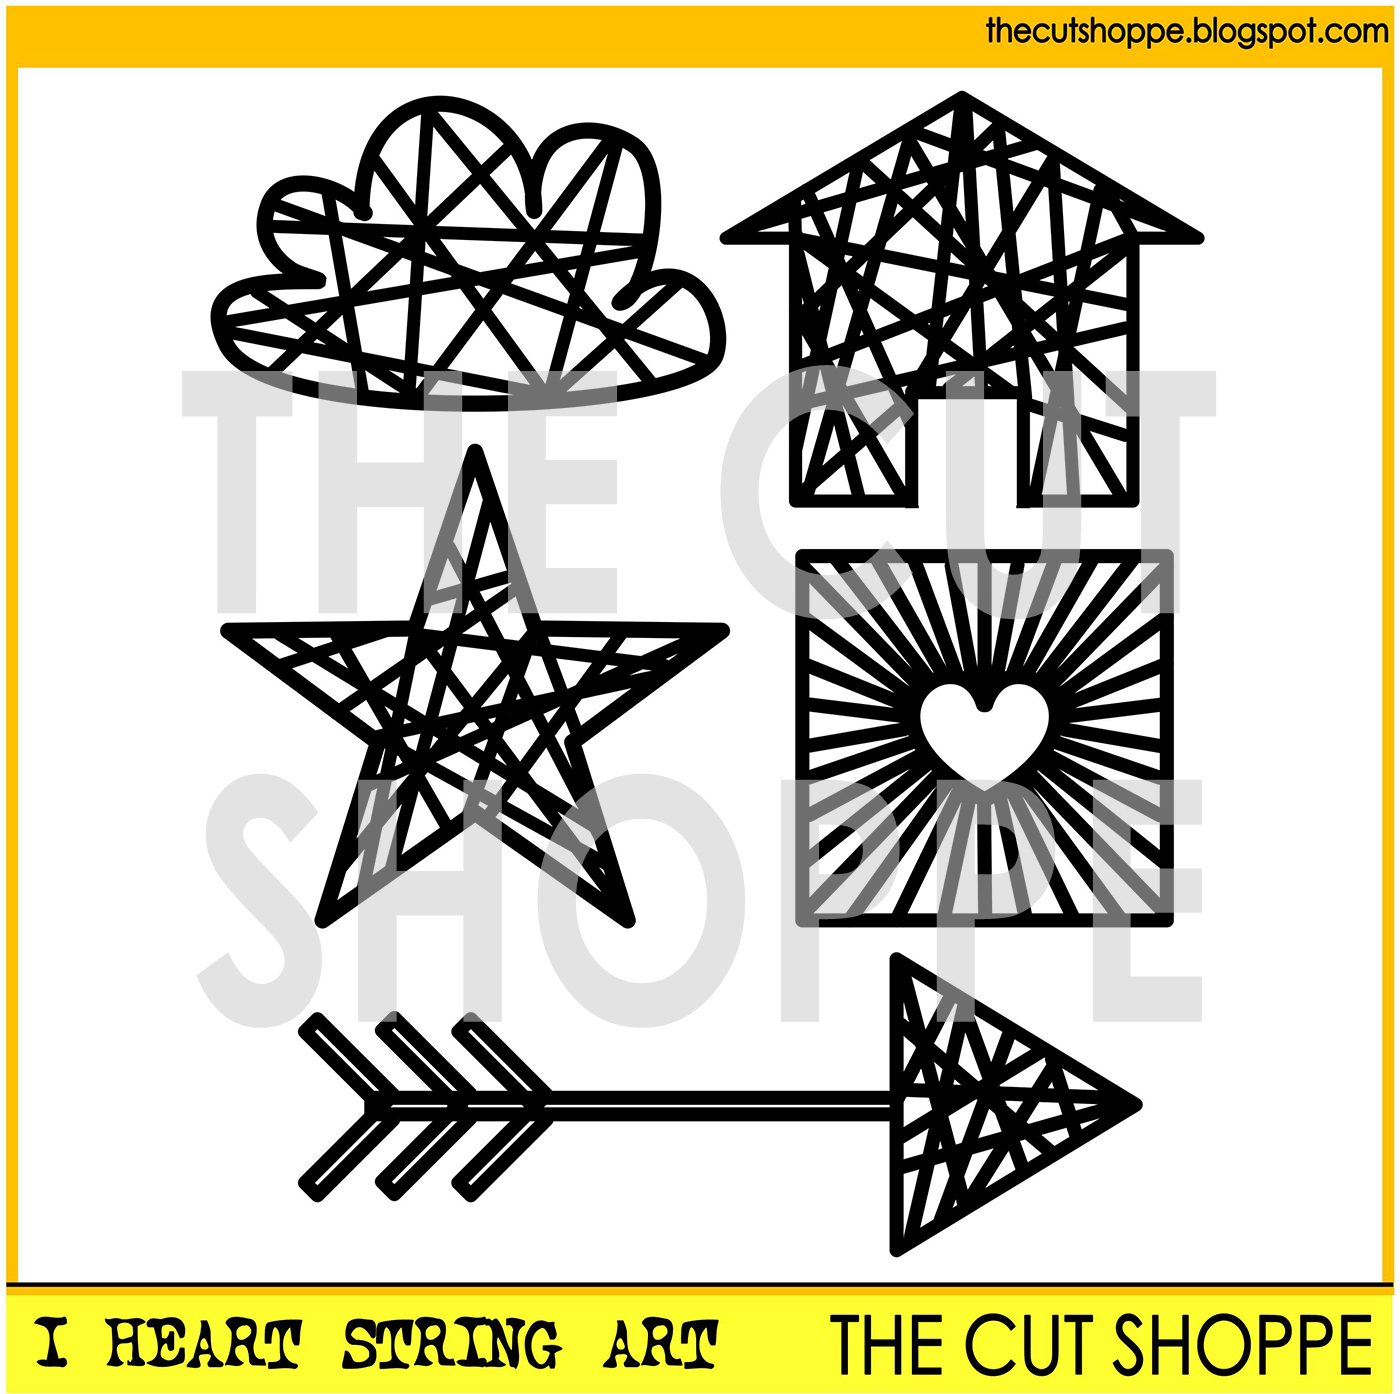 https://www.etsy.com/listing/226708496/the-i-heart-string-art-cut-file-consists?ref=shop_home_active_1